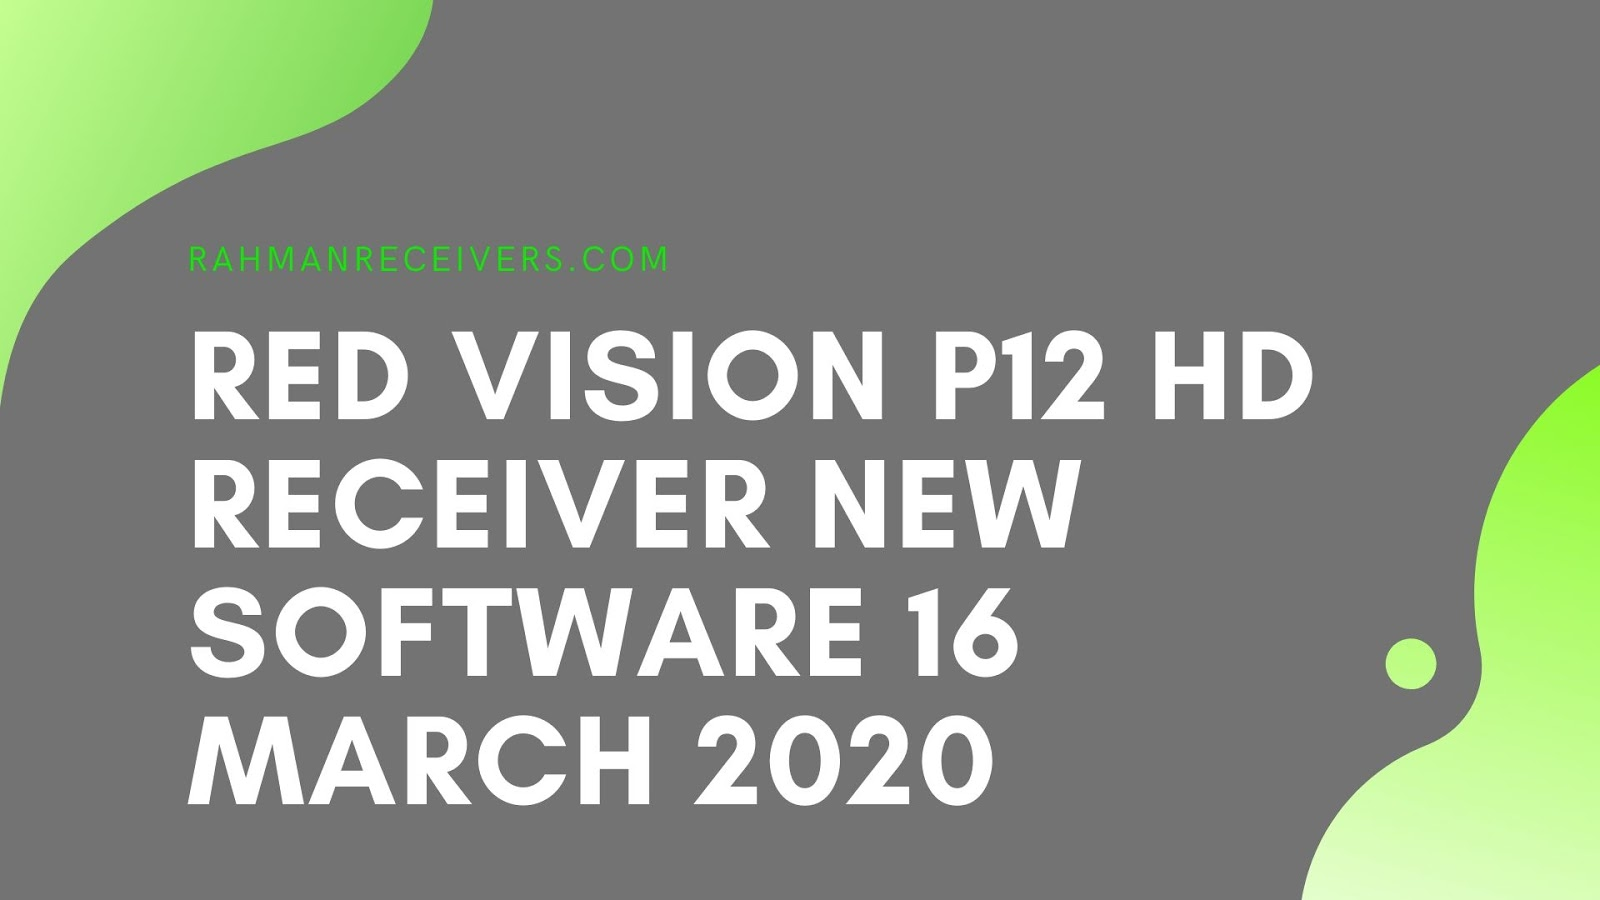 RED VISION P12 HD RECEIVER NEW SOFTWARE 16 MARCH 2020